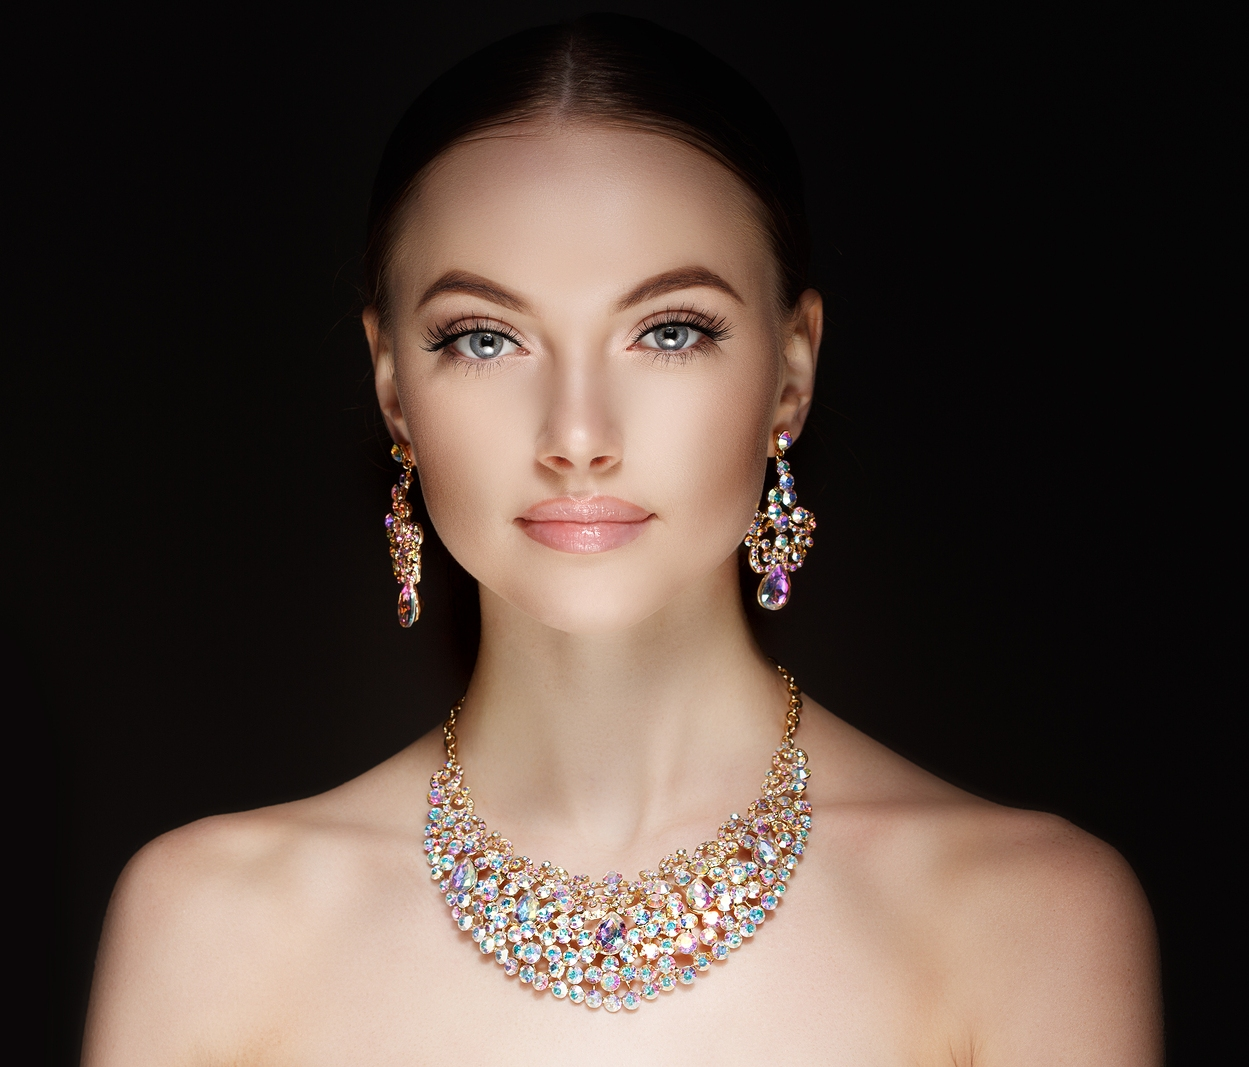 Free Your Style Goddess with a Dazzling Necklace